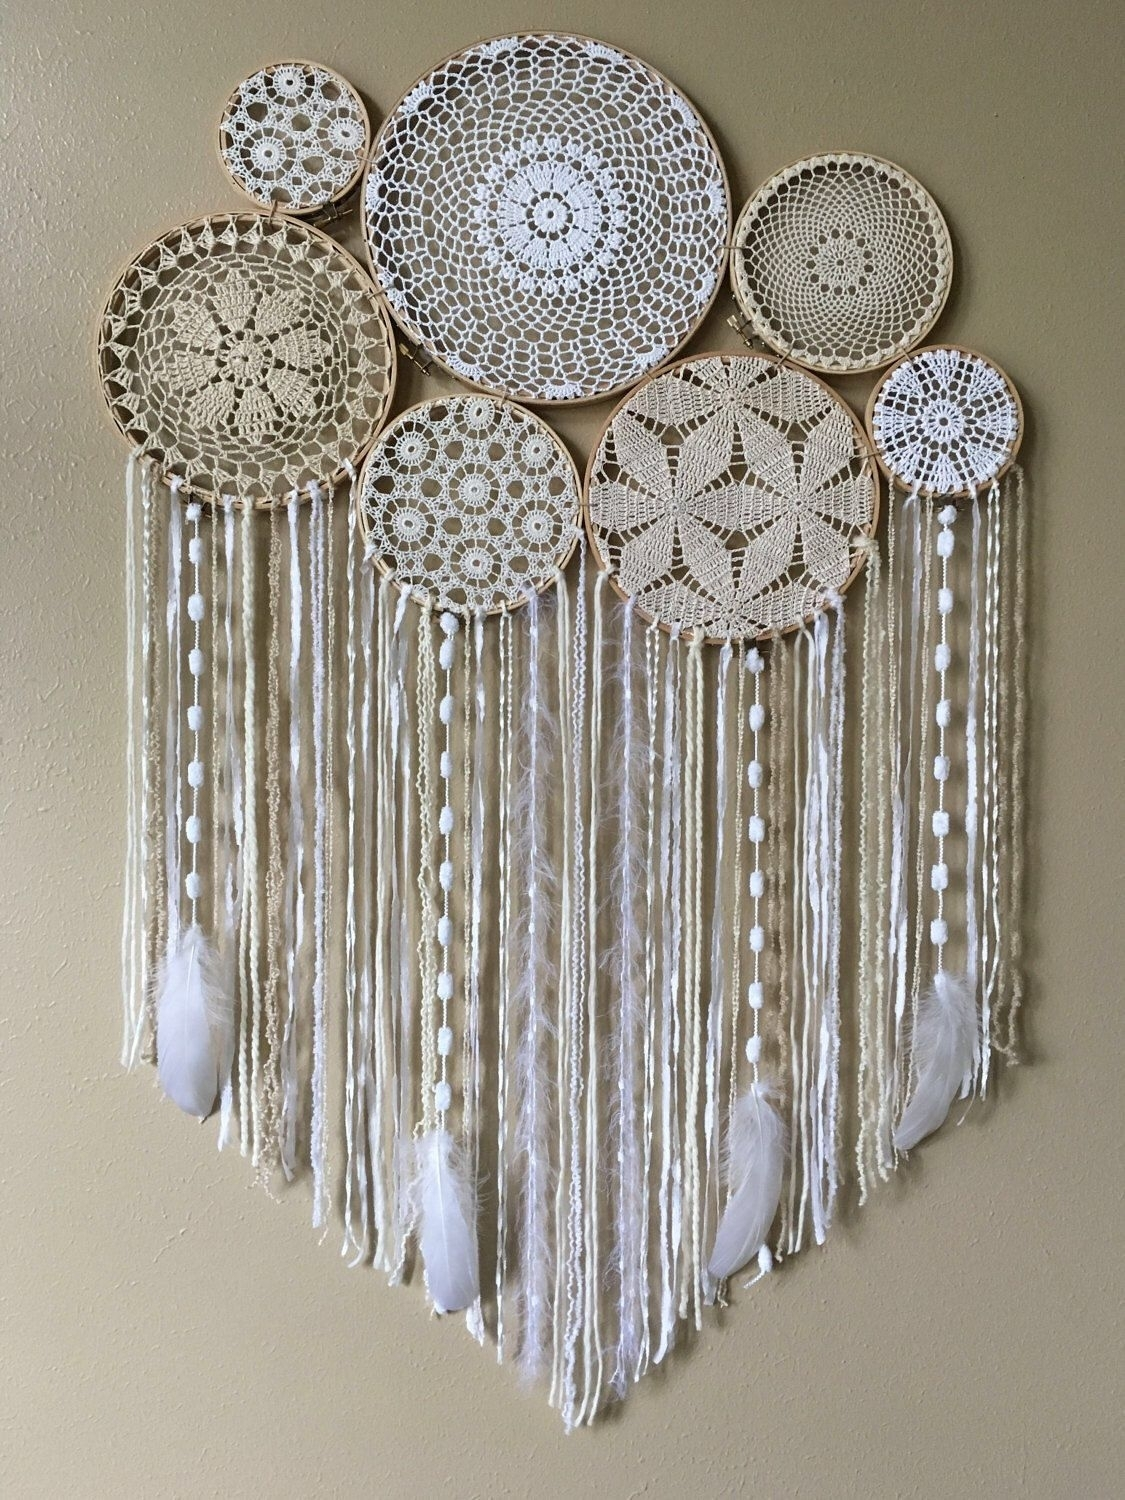 Dream Catcher Wall Hanging • Doily Dream Catcher • Boho Dreamcatcher regarding Crochet Wall Art (Image 11 of 20)